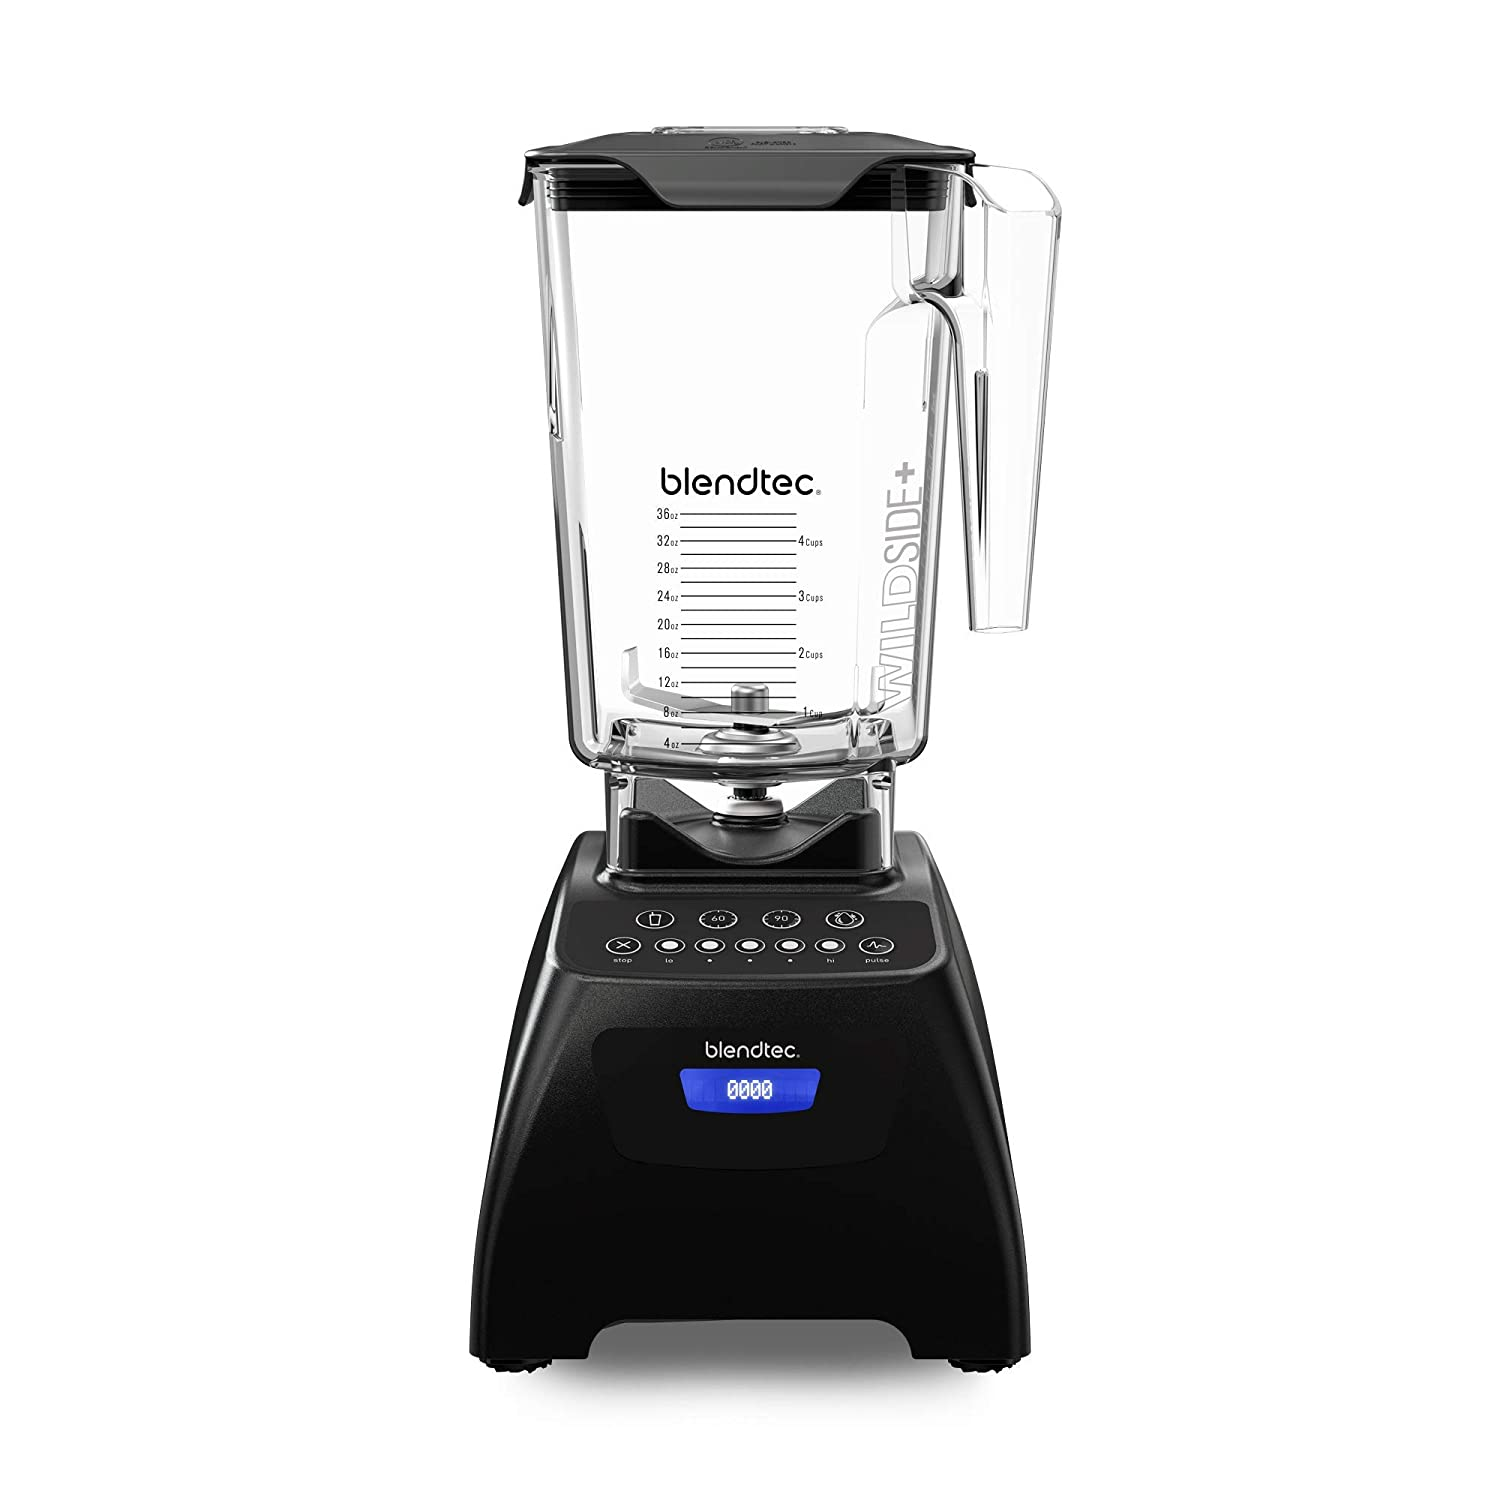 Blendtec Classic 575 Blender - WildSide+ Jar (90 oz) - Professional-Grade Power - Self-Cleaning - 4 Pre-programmed Cycles - 5-Speeds - Black